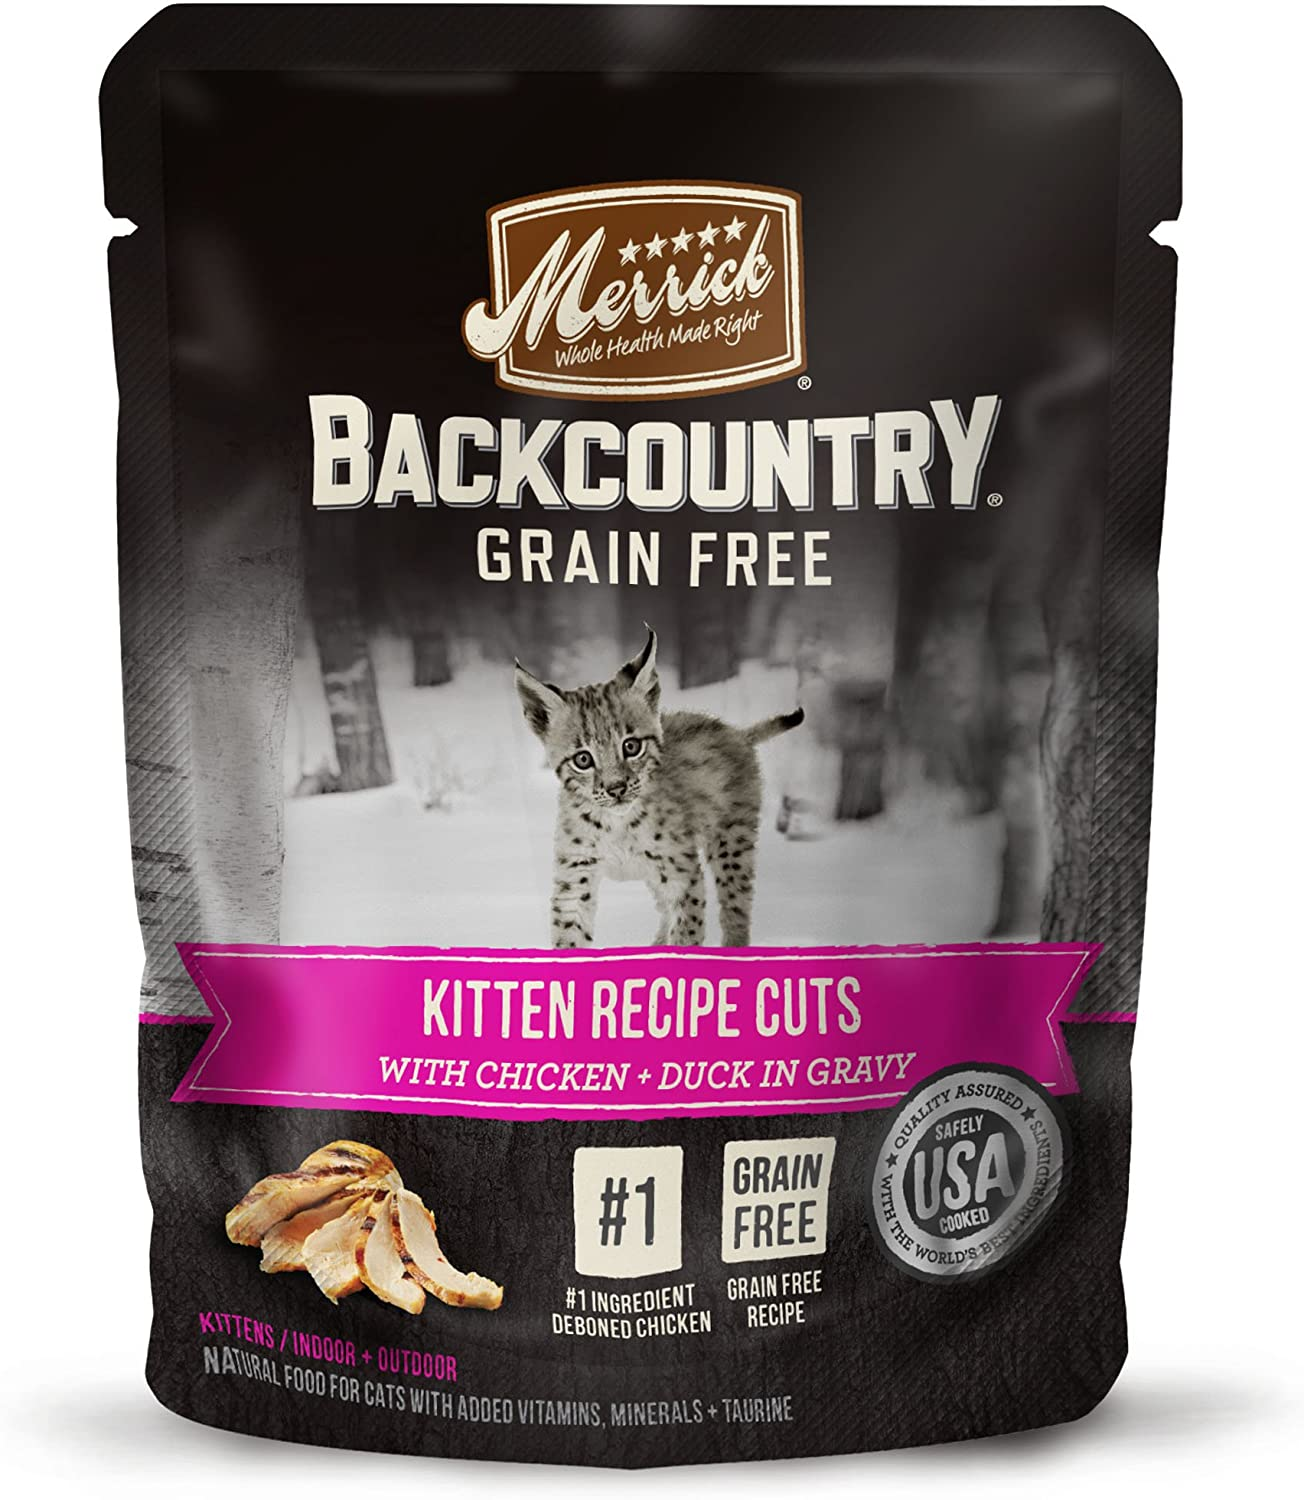 Merrick Backcountry Grain Free Real Meat Wet Cat Food, 3 oz. Pouches